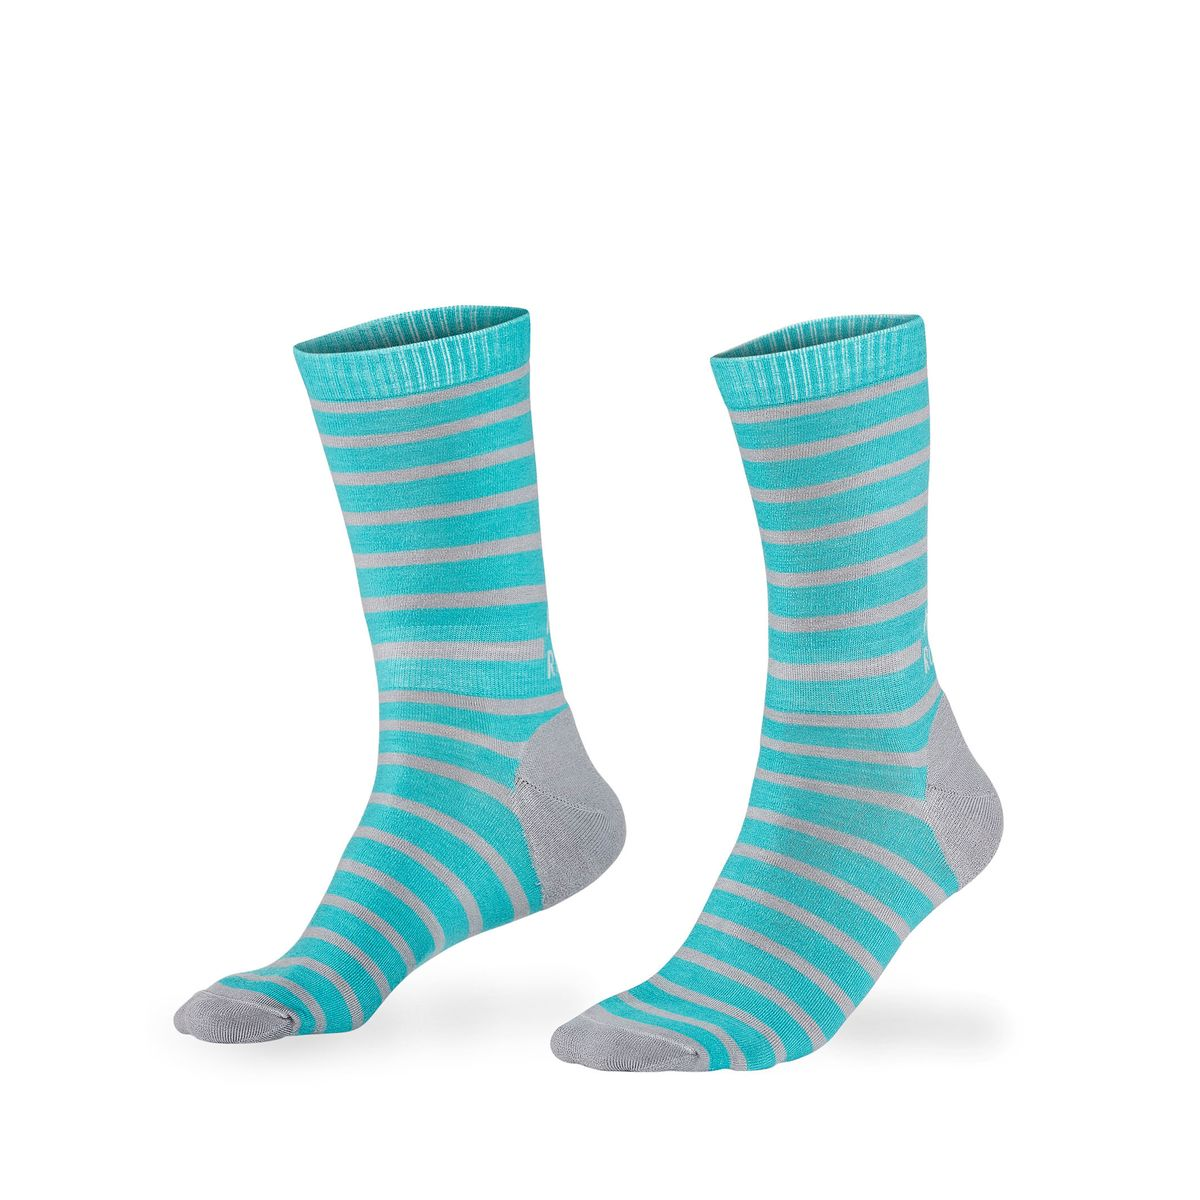 All Rounder Stripes Crew Sock